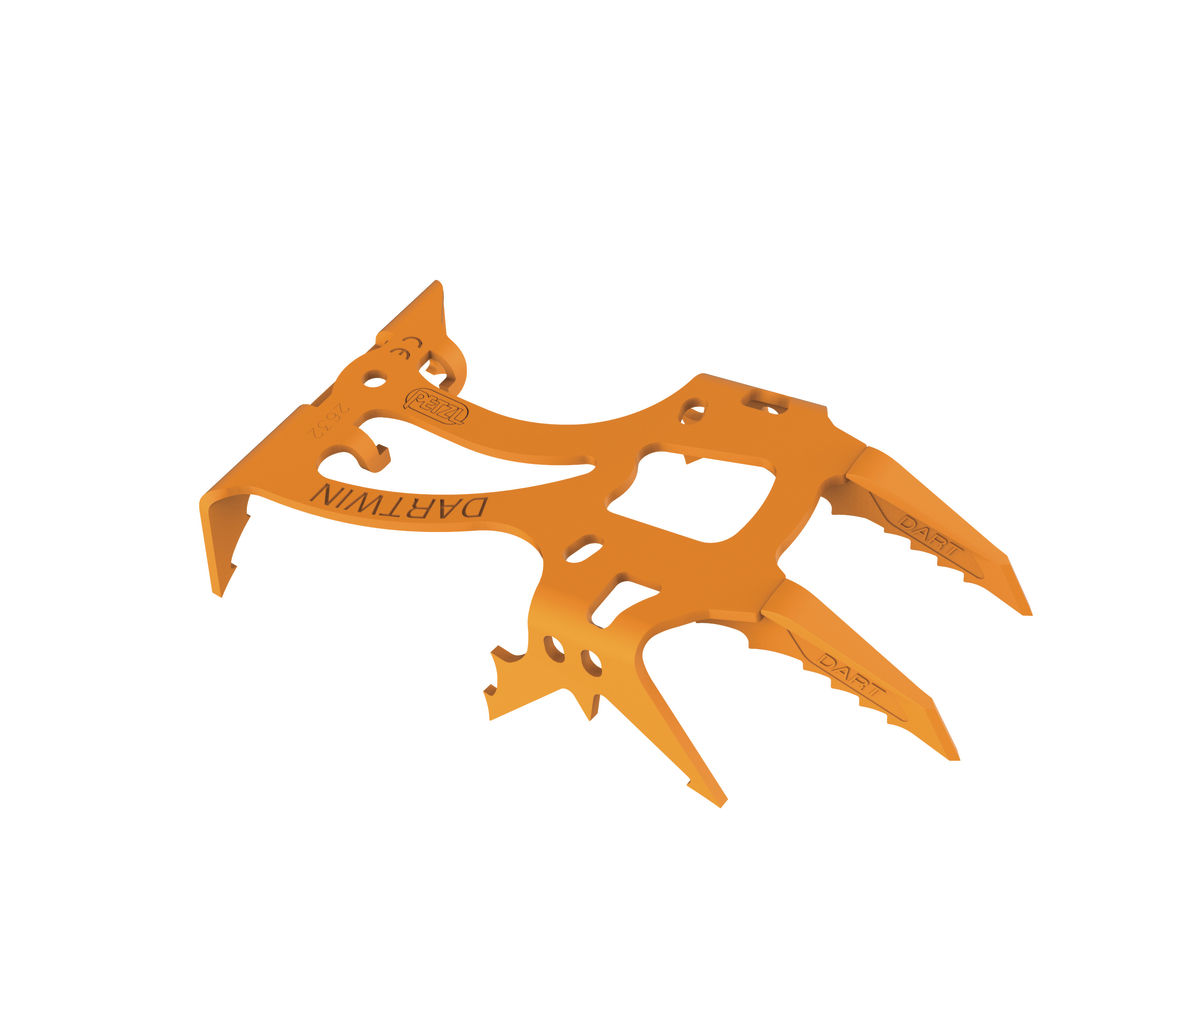 DARTWIN crampon front sections